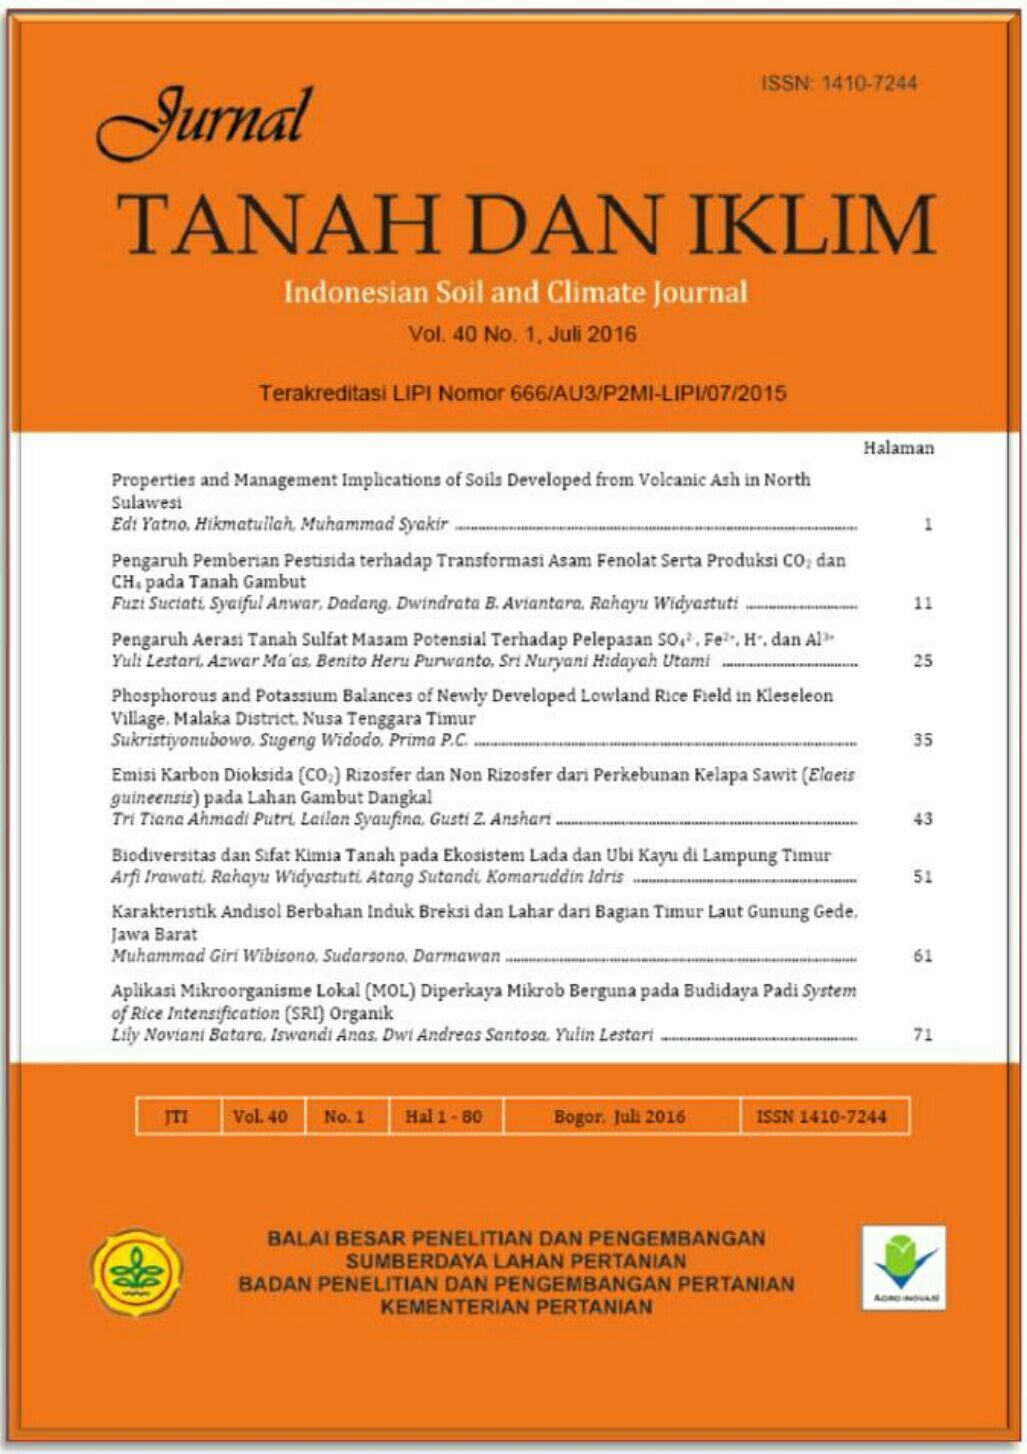 Jurnal Tanah dan Iklim (Indonesian Soil and Climate Journal)